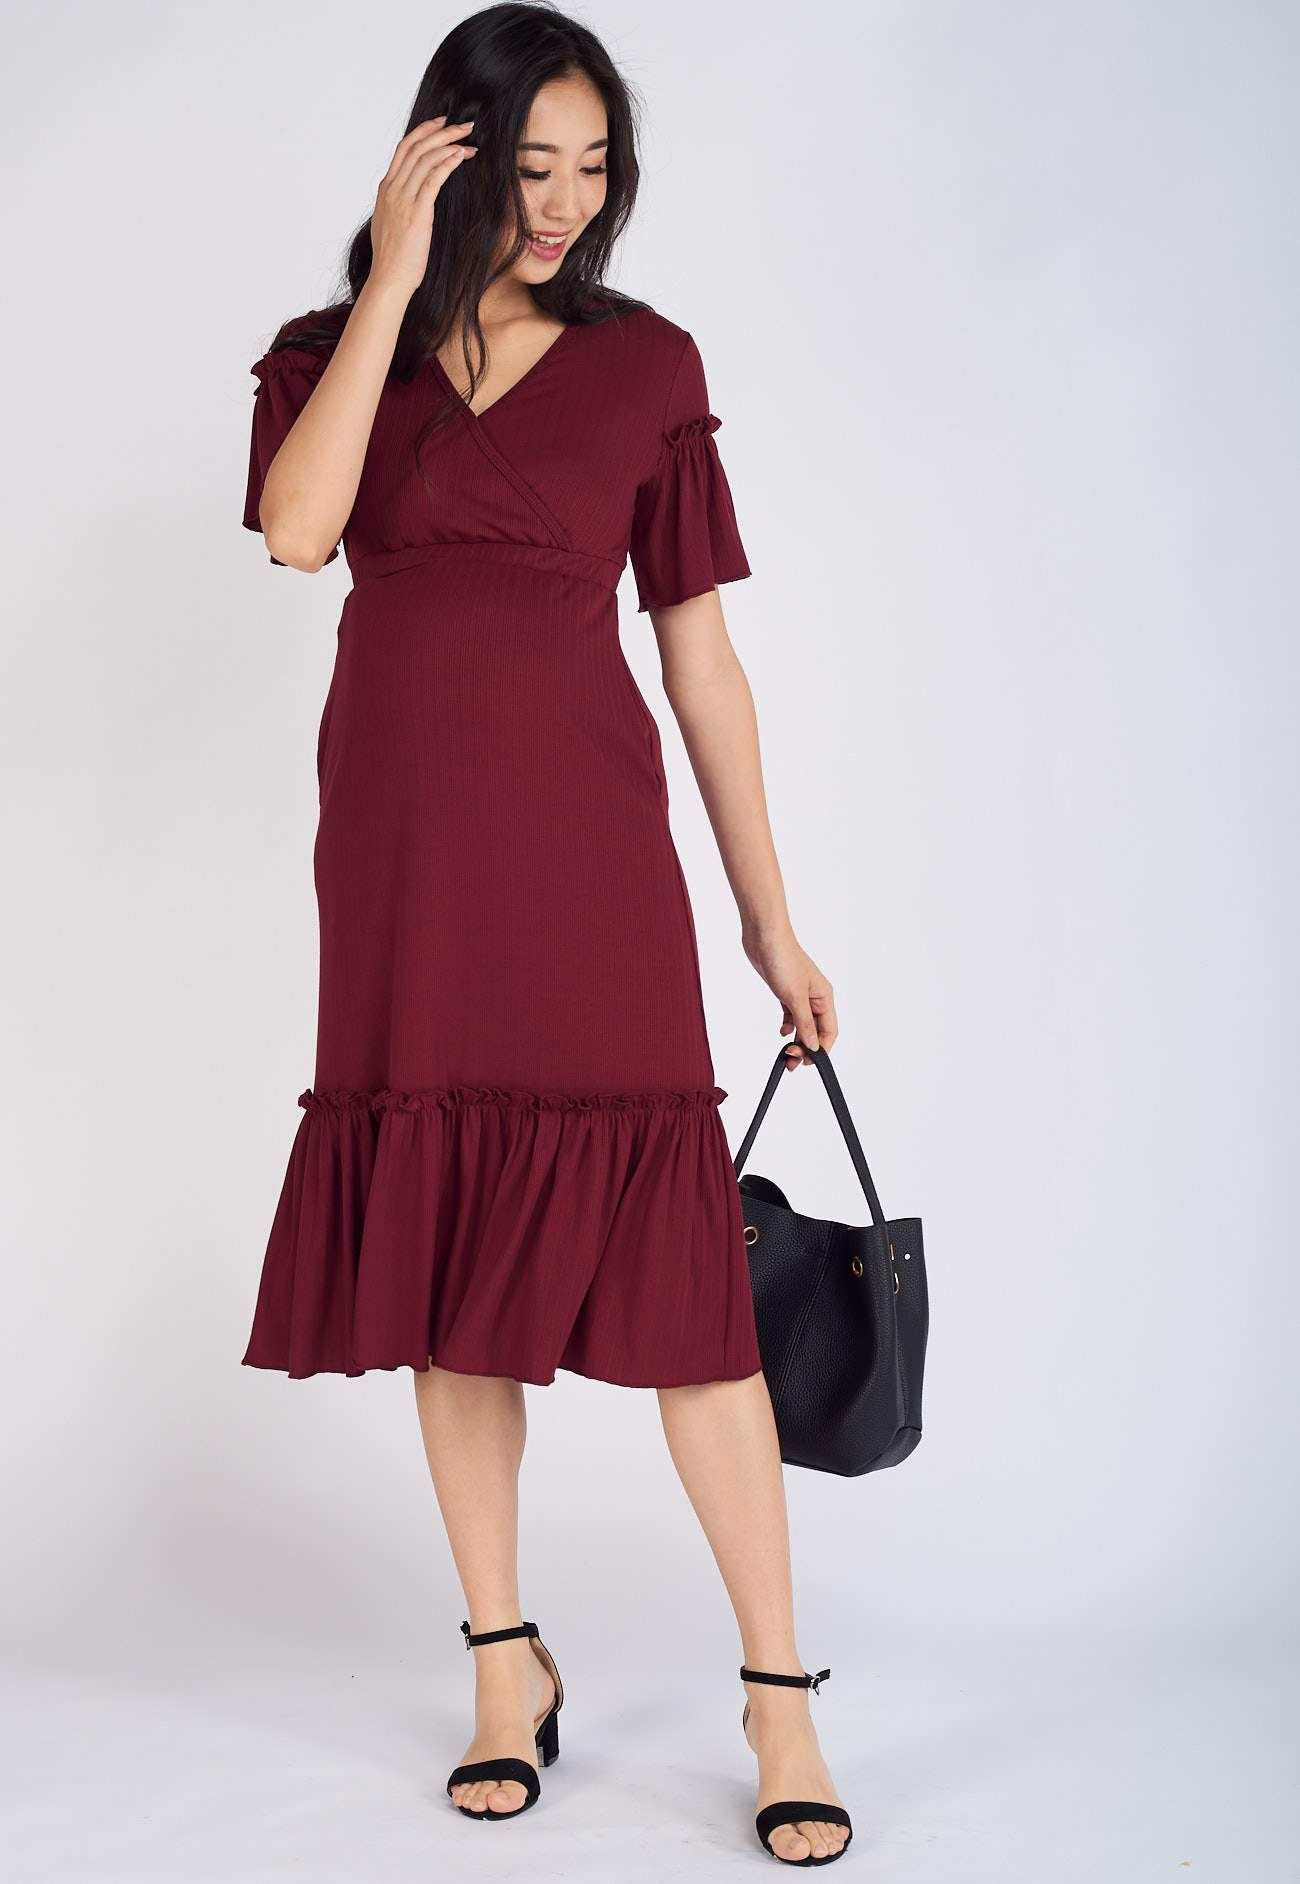 Rikku Ruffled Nursing Dress in Red  by Jump Eat Cry - Maternity and nursing wear